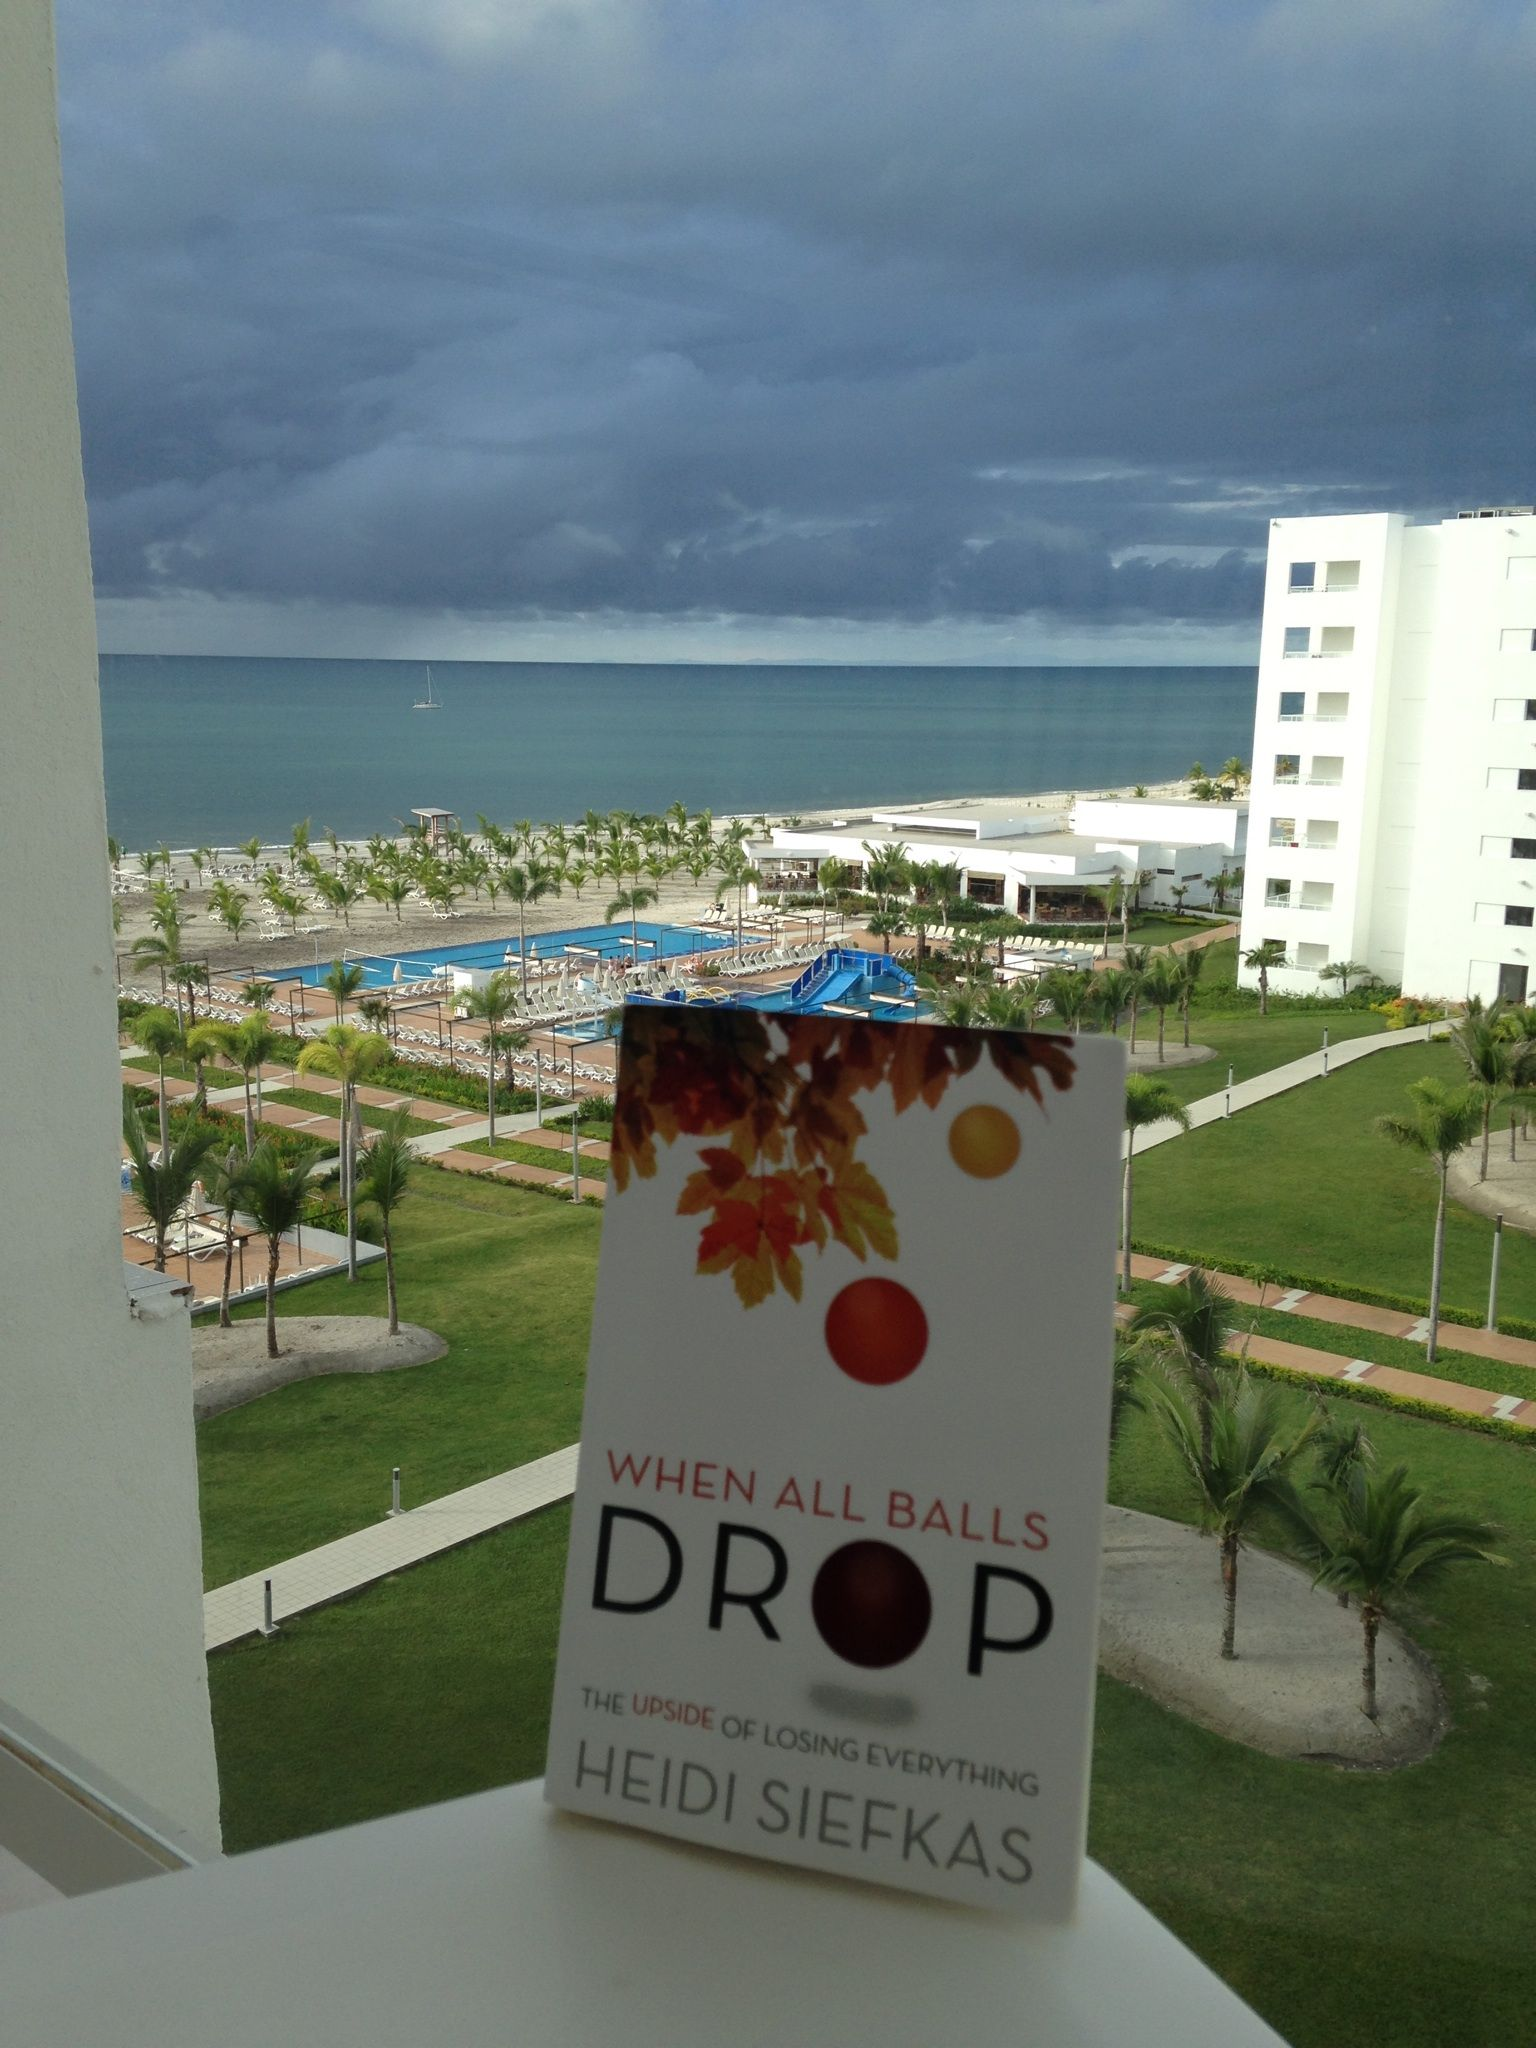 OMG - Look where #WhenAllBallsDrop was spotted! A reader sent this picture from Panama. The book and its powerful message are going where even I haven't explored. This is a great sign! #newbooks #inspiration Where are you reading it? http://www.amazon.com/When-All-Balls-Drop-Everything/dp/1627871217/ref=cm_cr_pr_pb_t